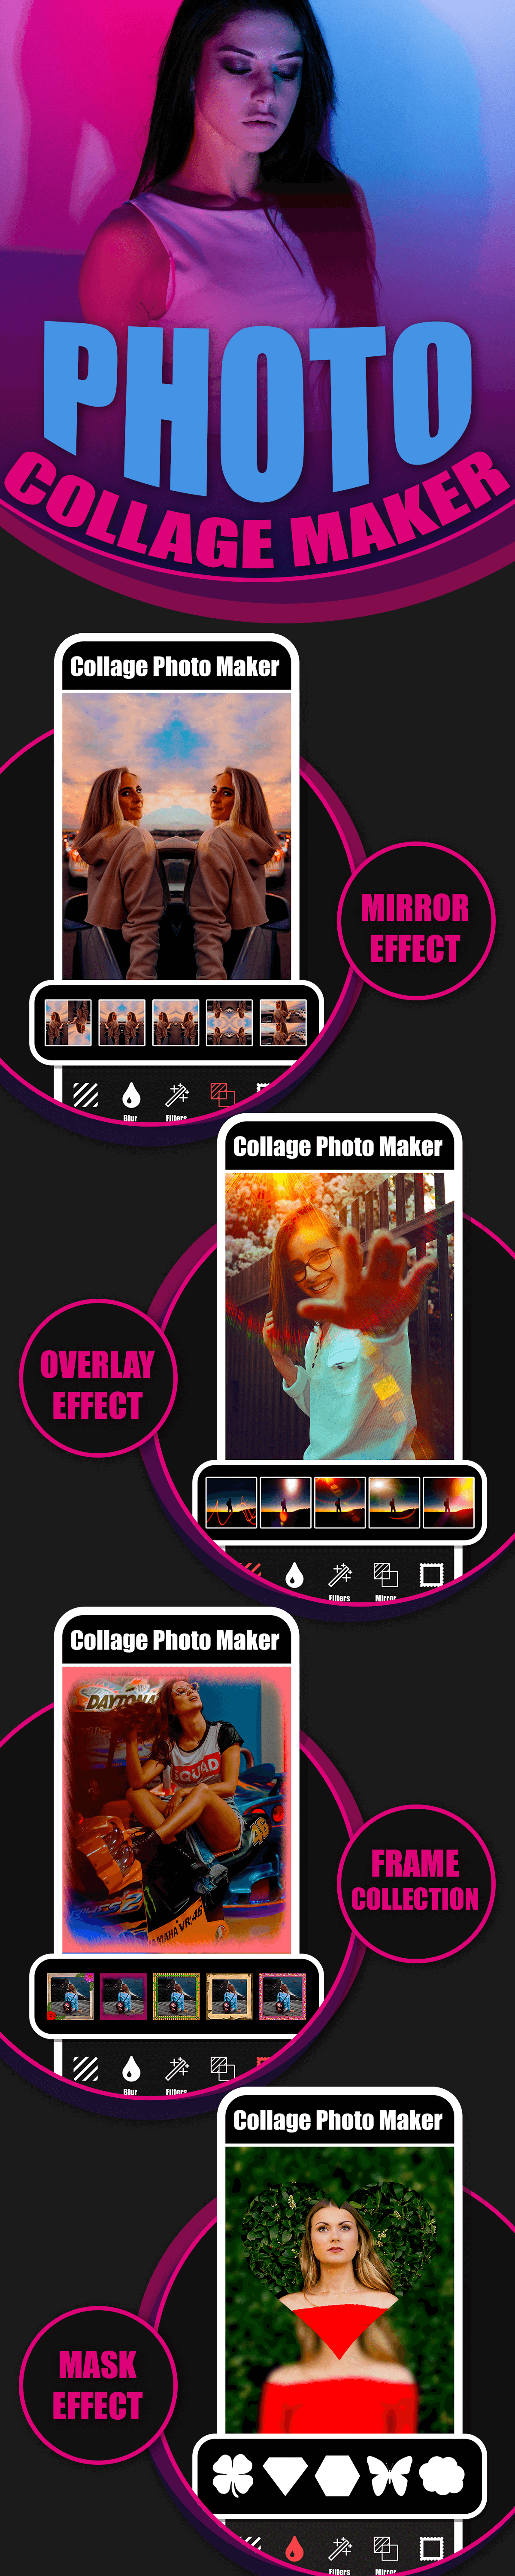 New Photo Collage Editor & Collage Pro Android App with Admob Ads Full Code, Guide - 1